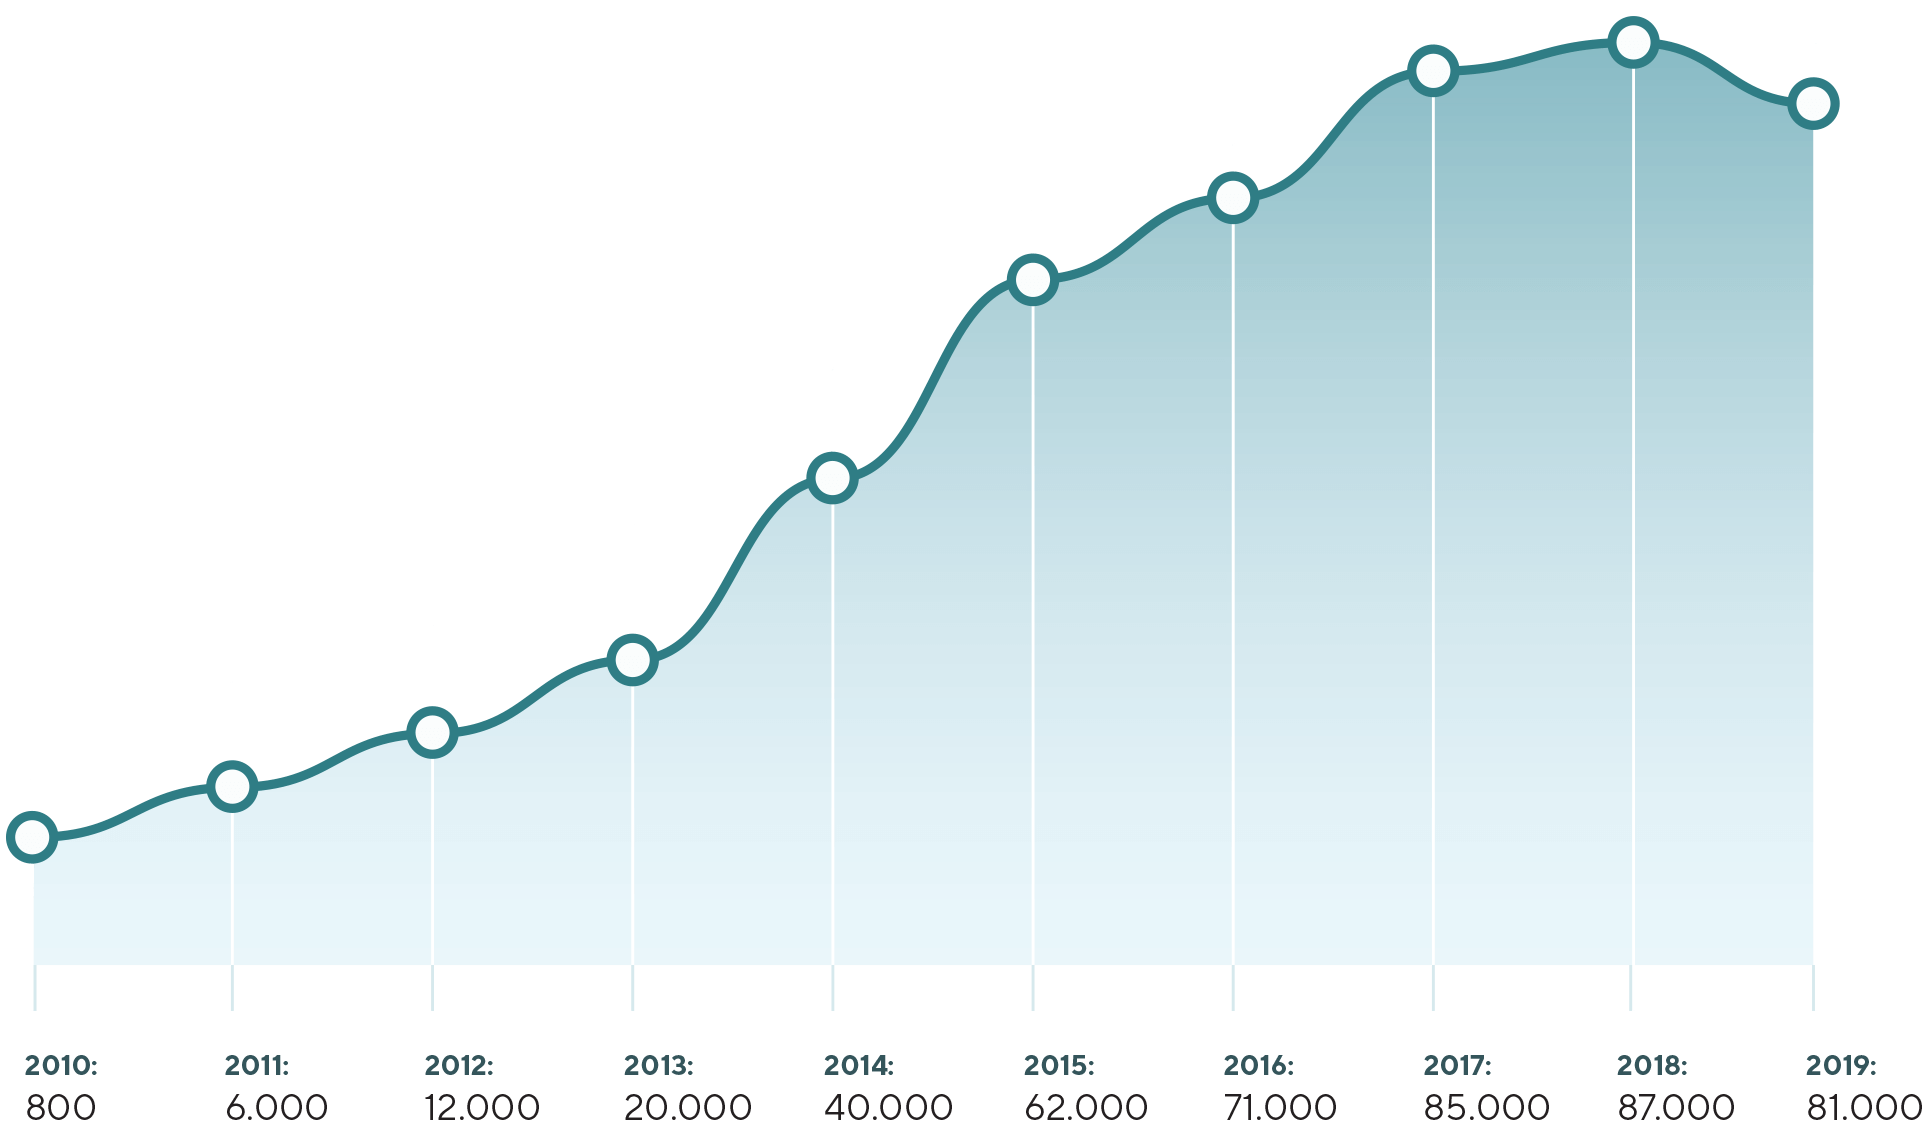 Graph showing visiting numbers from 2010 (800) to 2019 (81000)